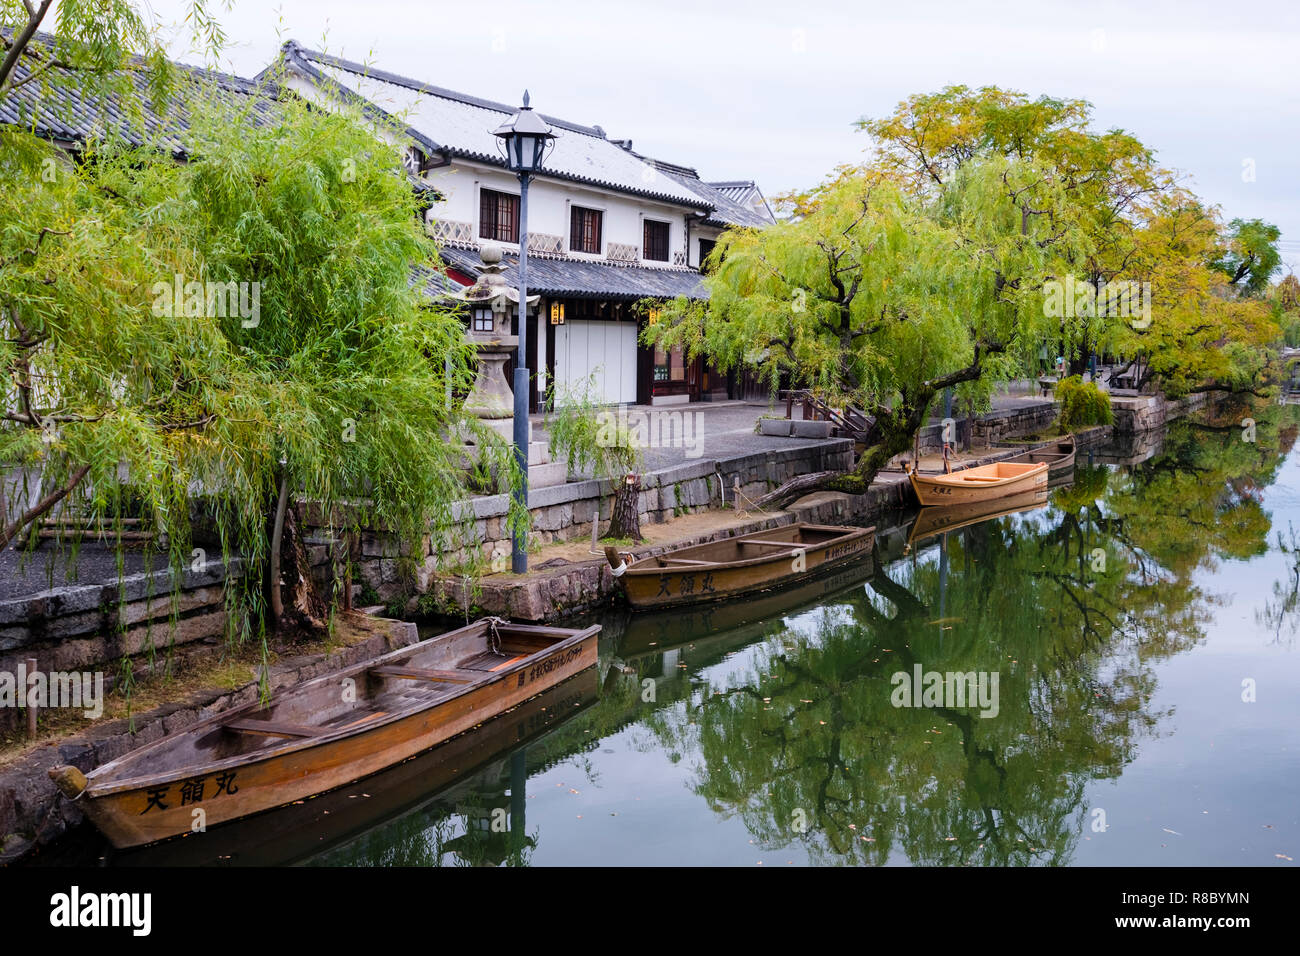 Ancient canal in the Bikan historic disctrict of Kurashiki. Situated in Okayama Prefecture near the Inland Sea, the city has become famous for its int - Stock Image